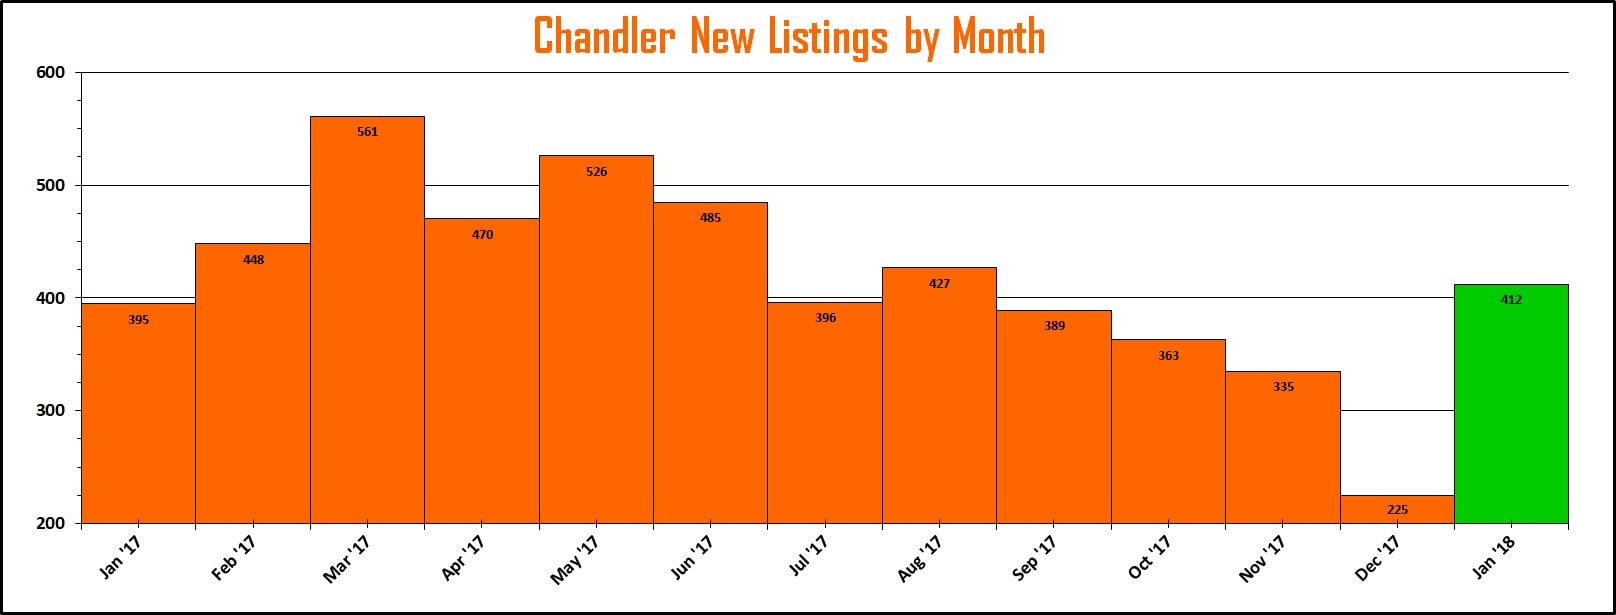 Chandler Market Reports - New Listings by Month